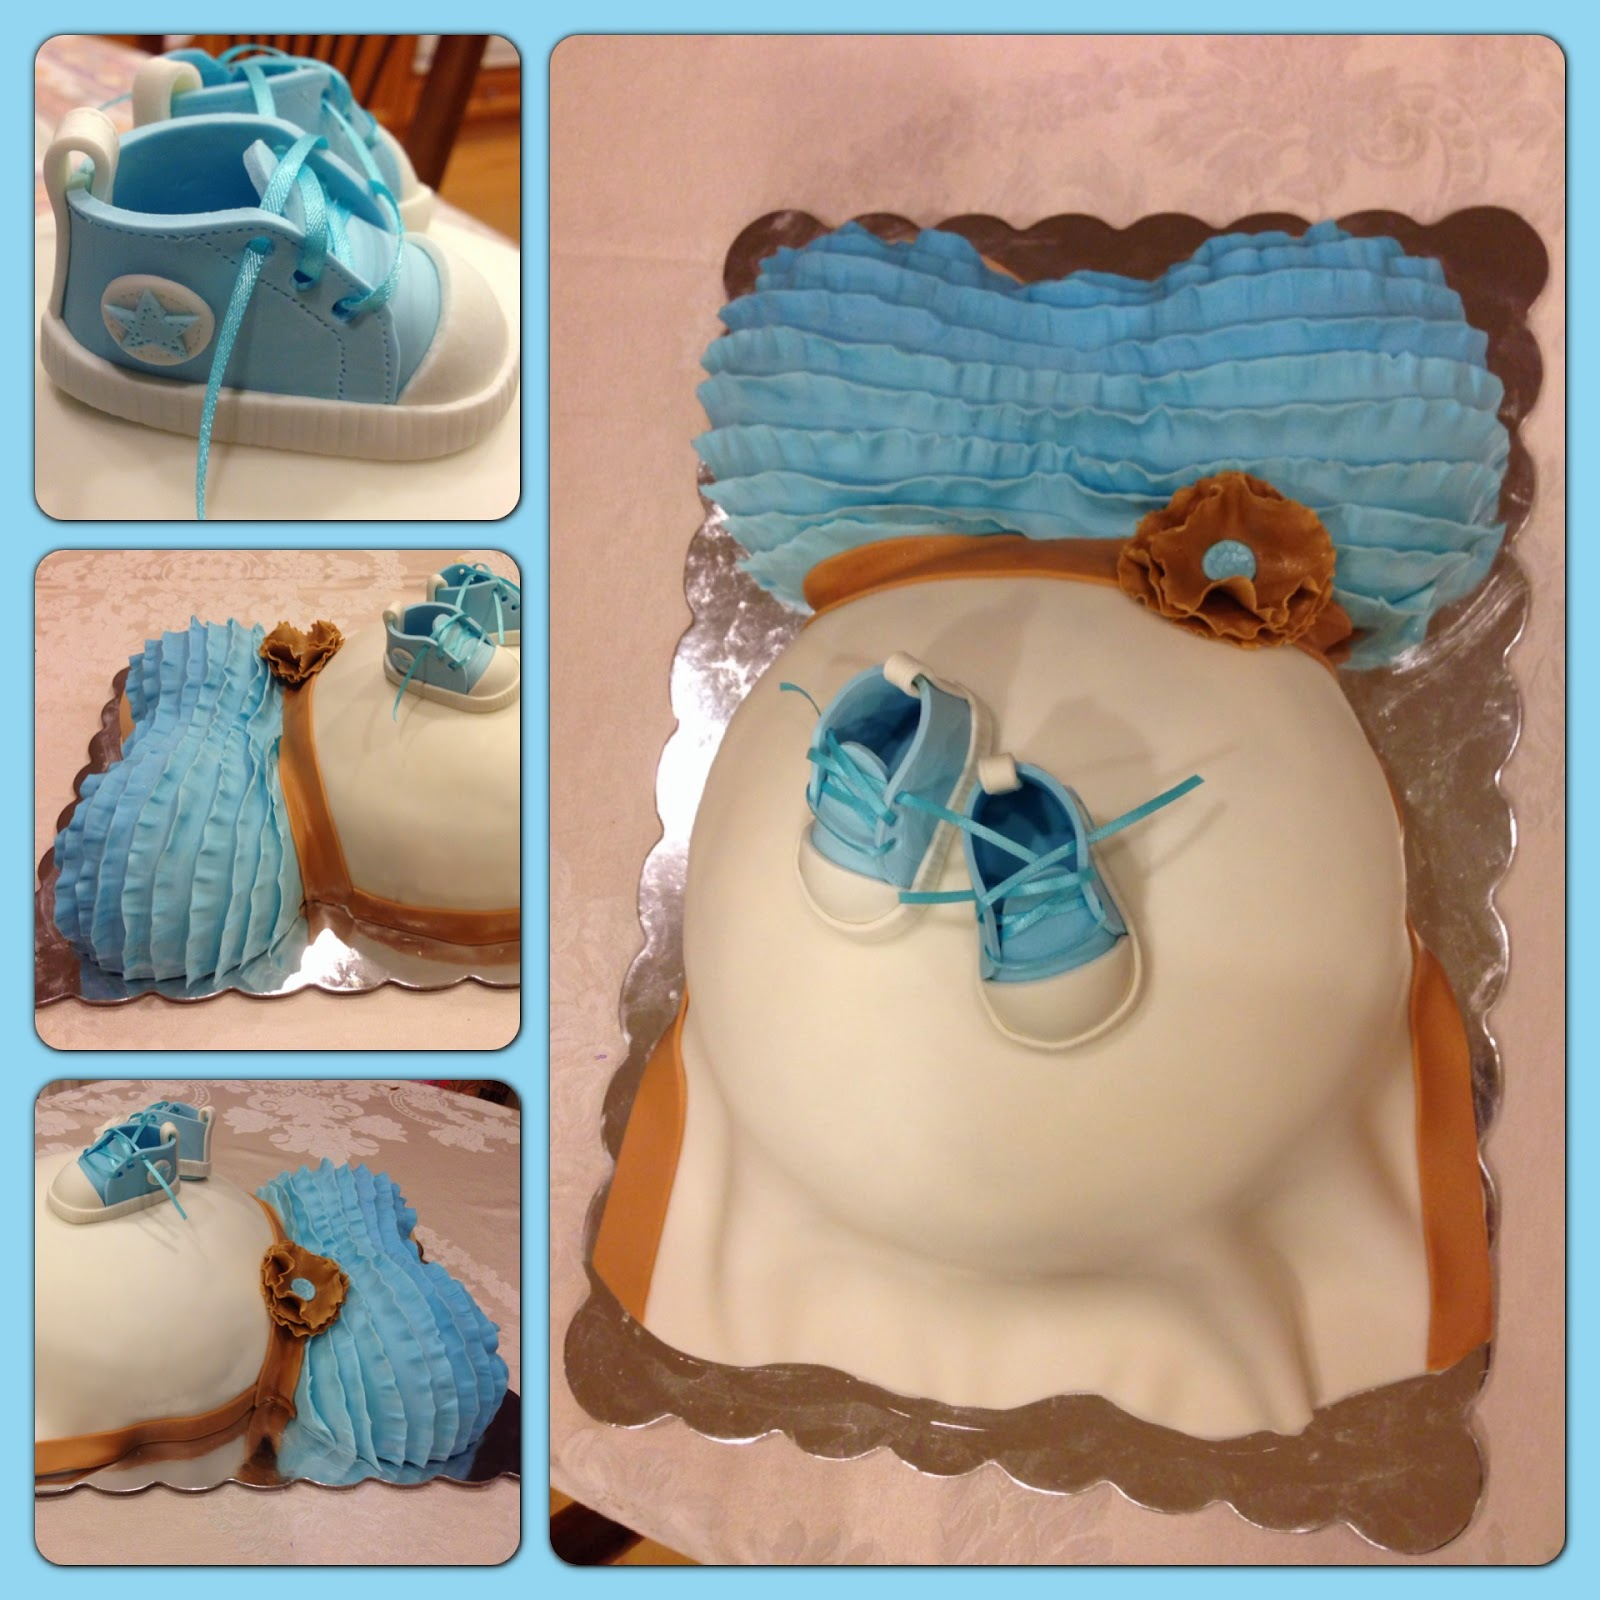 Boys Baby Shower Cake: Kaylynn Cakes: Baby Shower Cakes